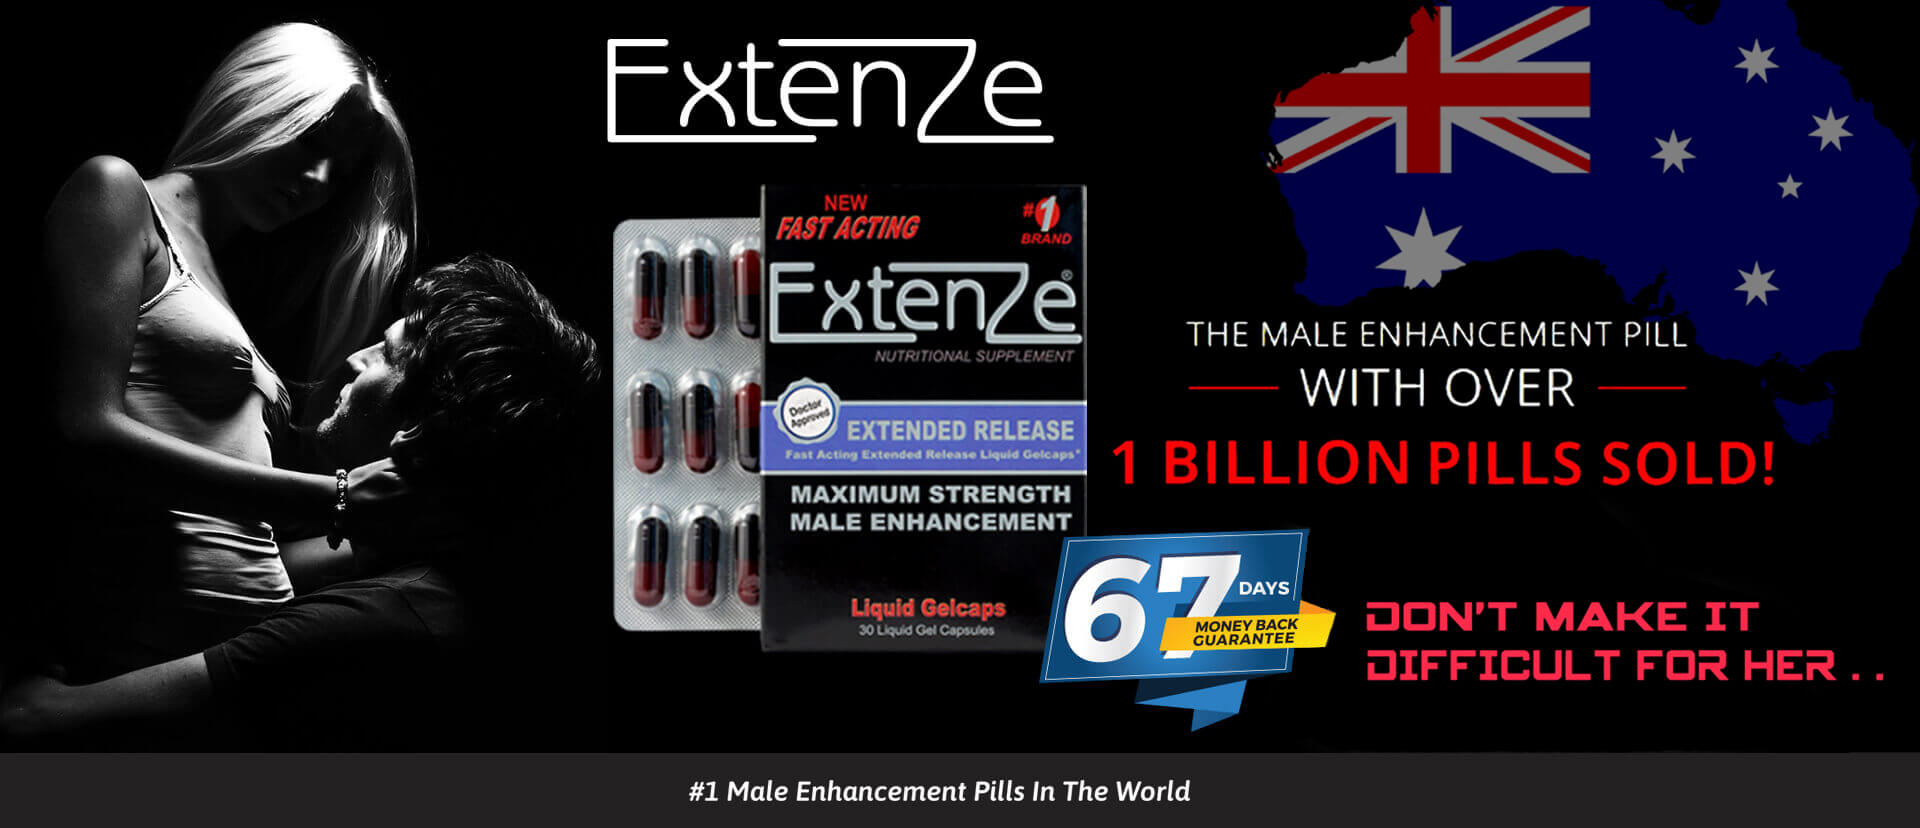 verified online voucher code Extenze